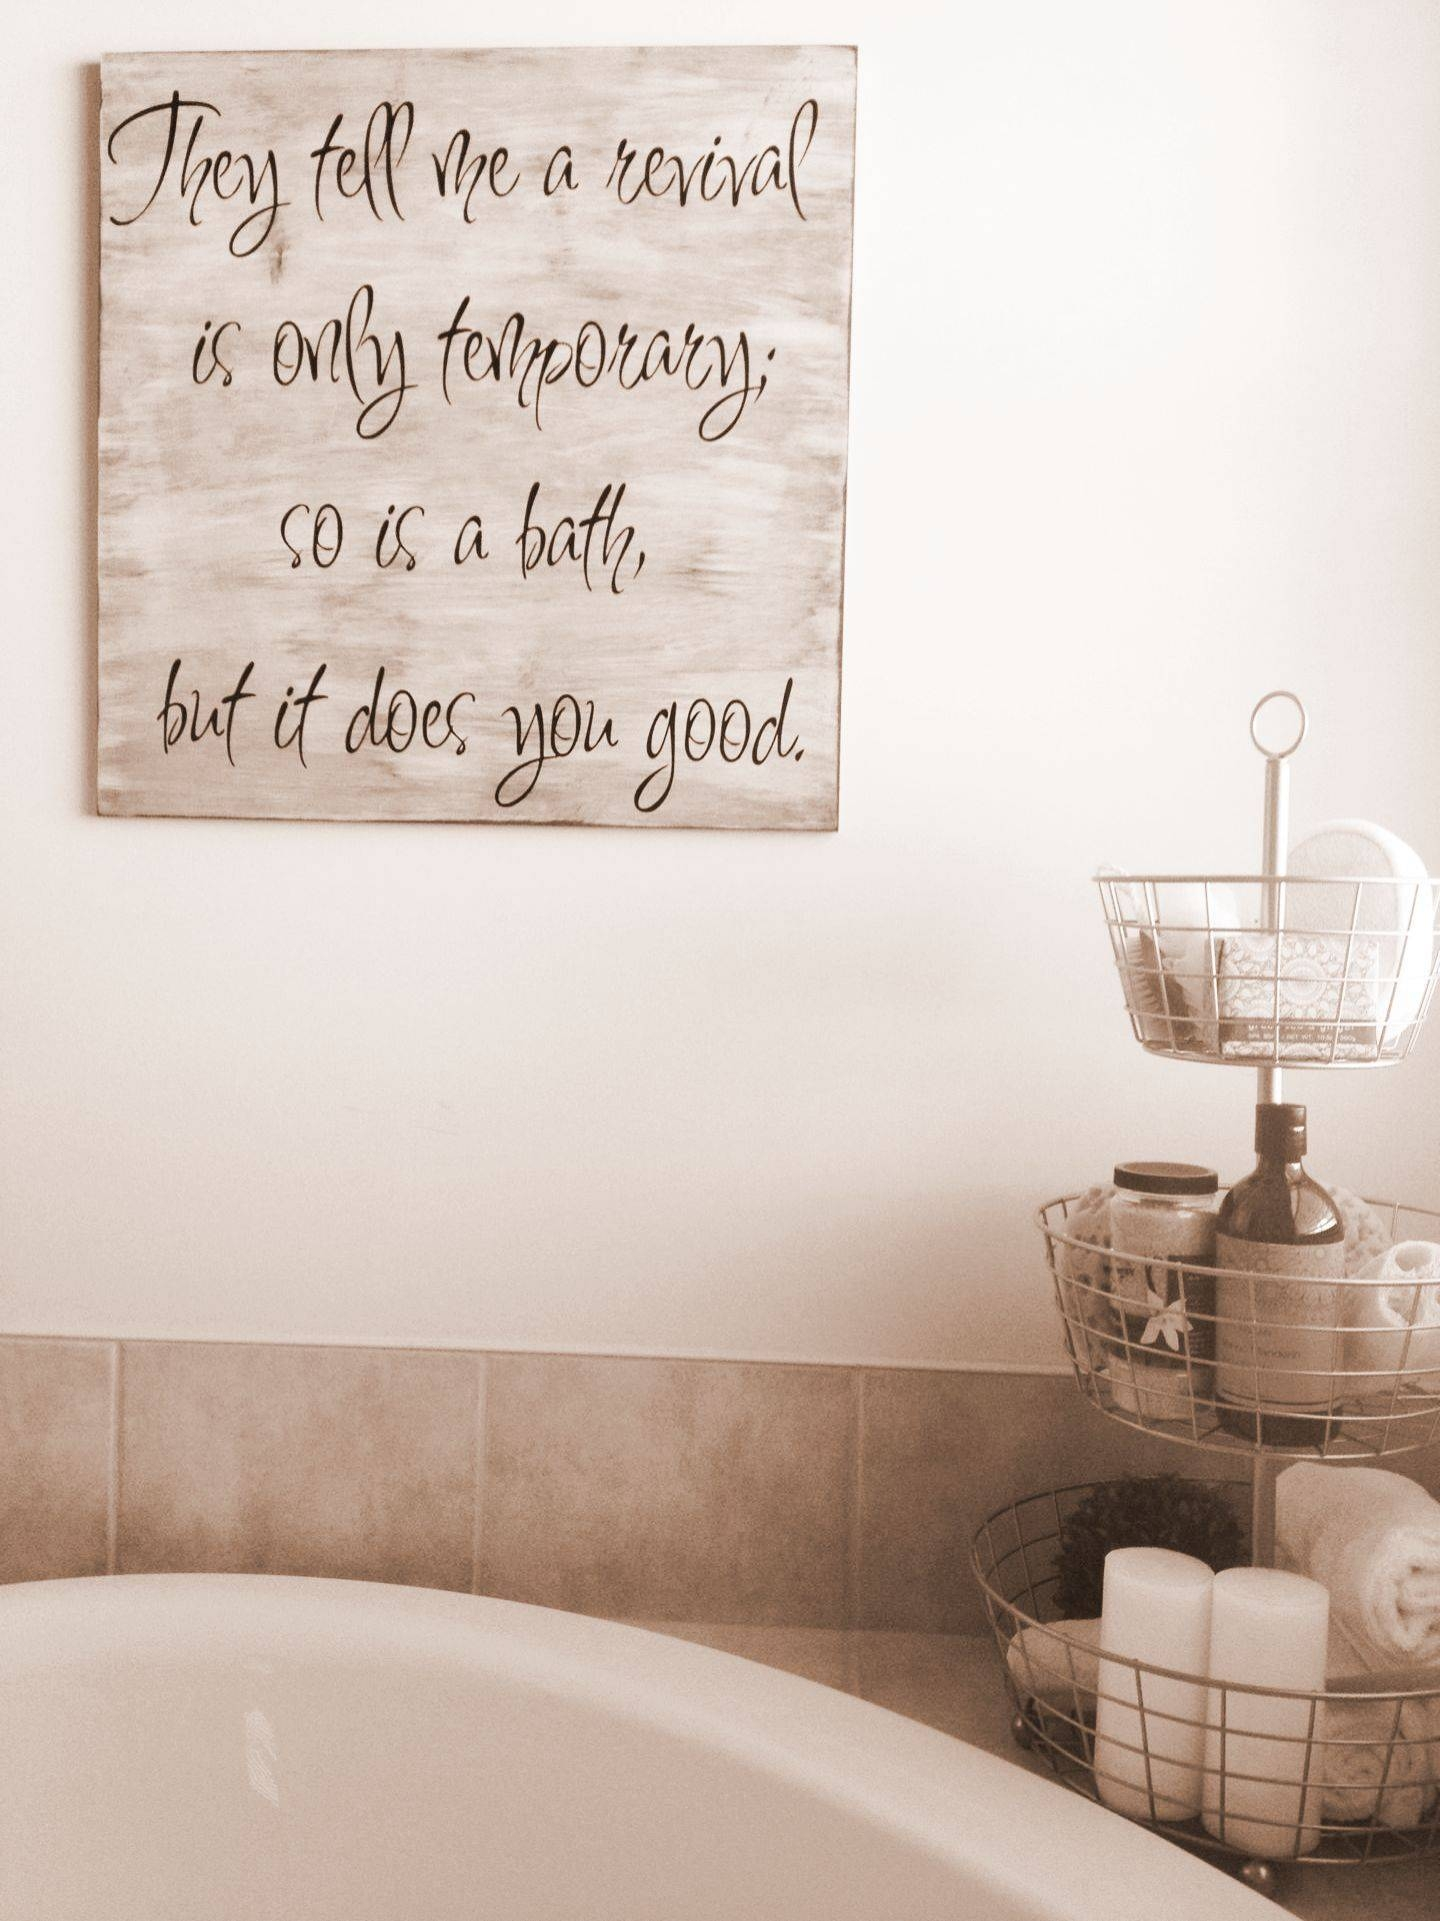 Lovely Bathroom Wall Art Ideas Decor For Your Home Decorating Inside Current Shower Room Wall Art (View 12 of 15)